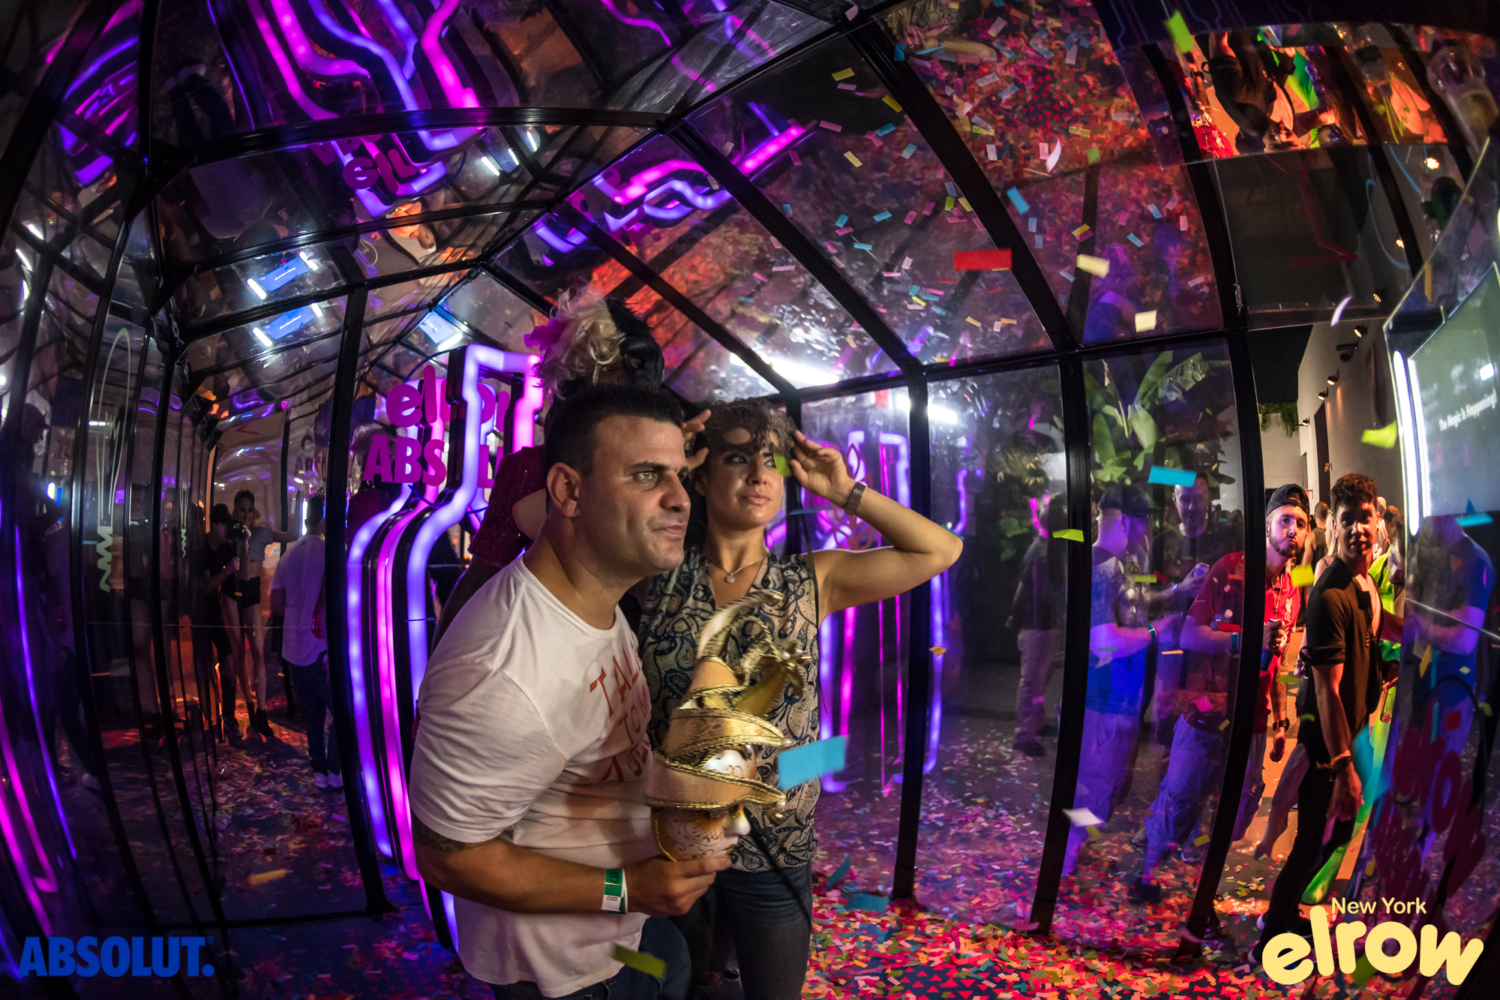 Making magic happen at Elrow Open Air – photos by aLIVE coverageELROW2018 0728 215034 9421 ALIVECOVERAGE